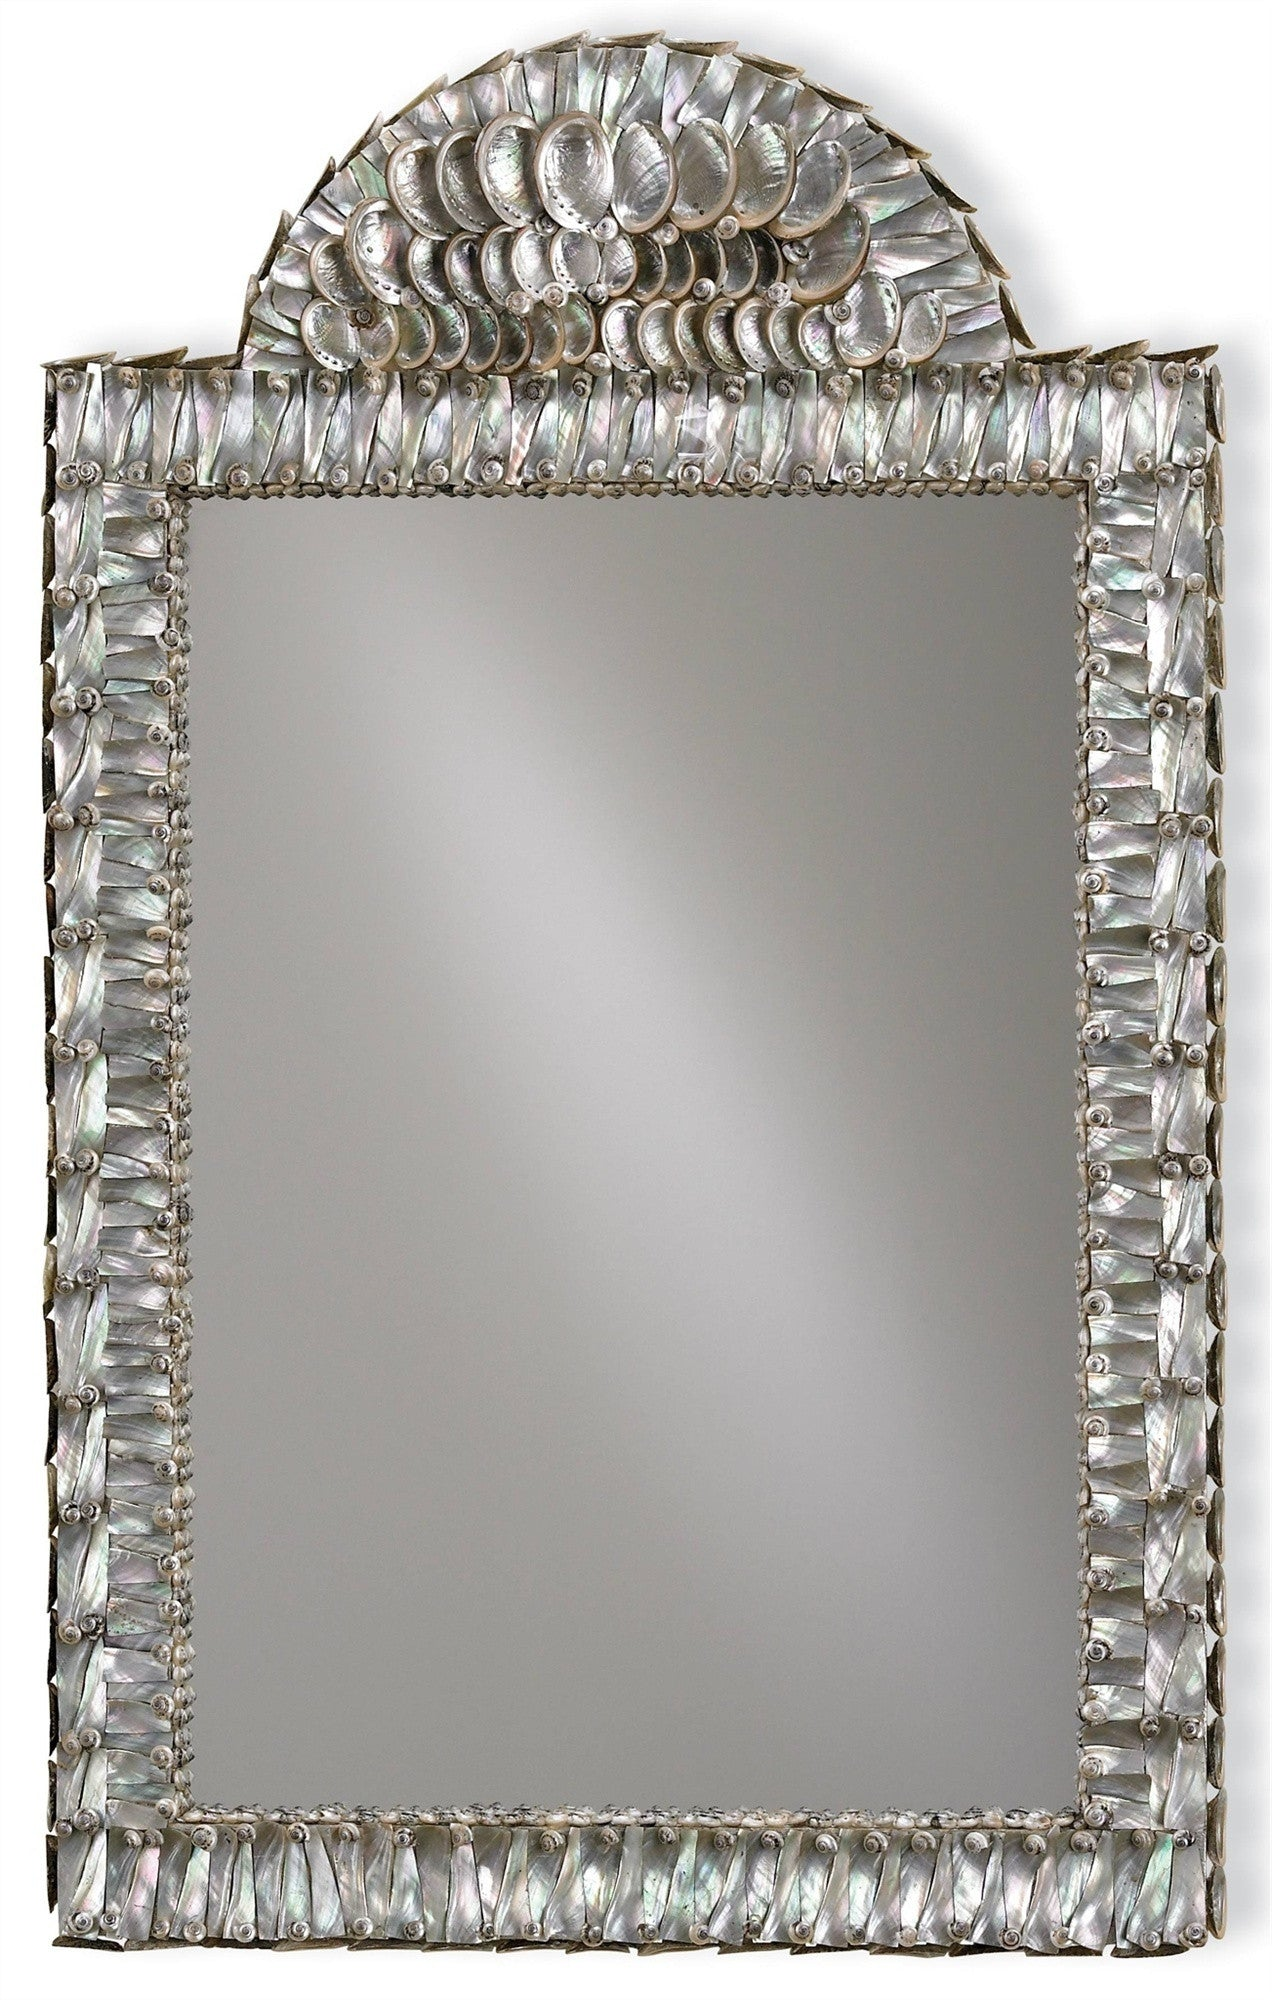 Abalone Wall Mirror design by Currey & Company